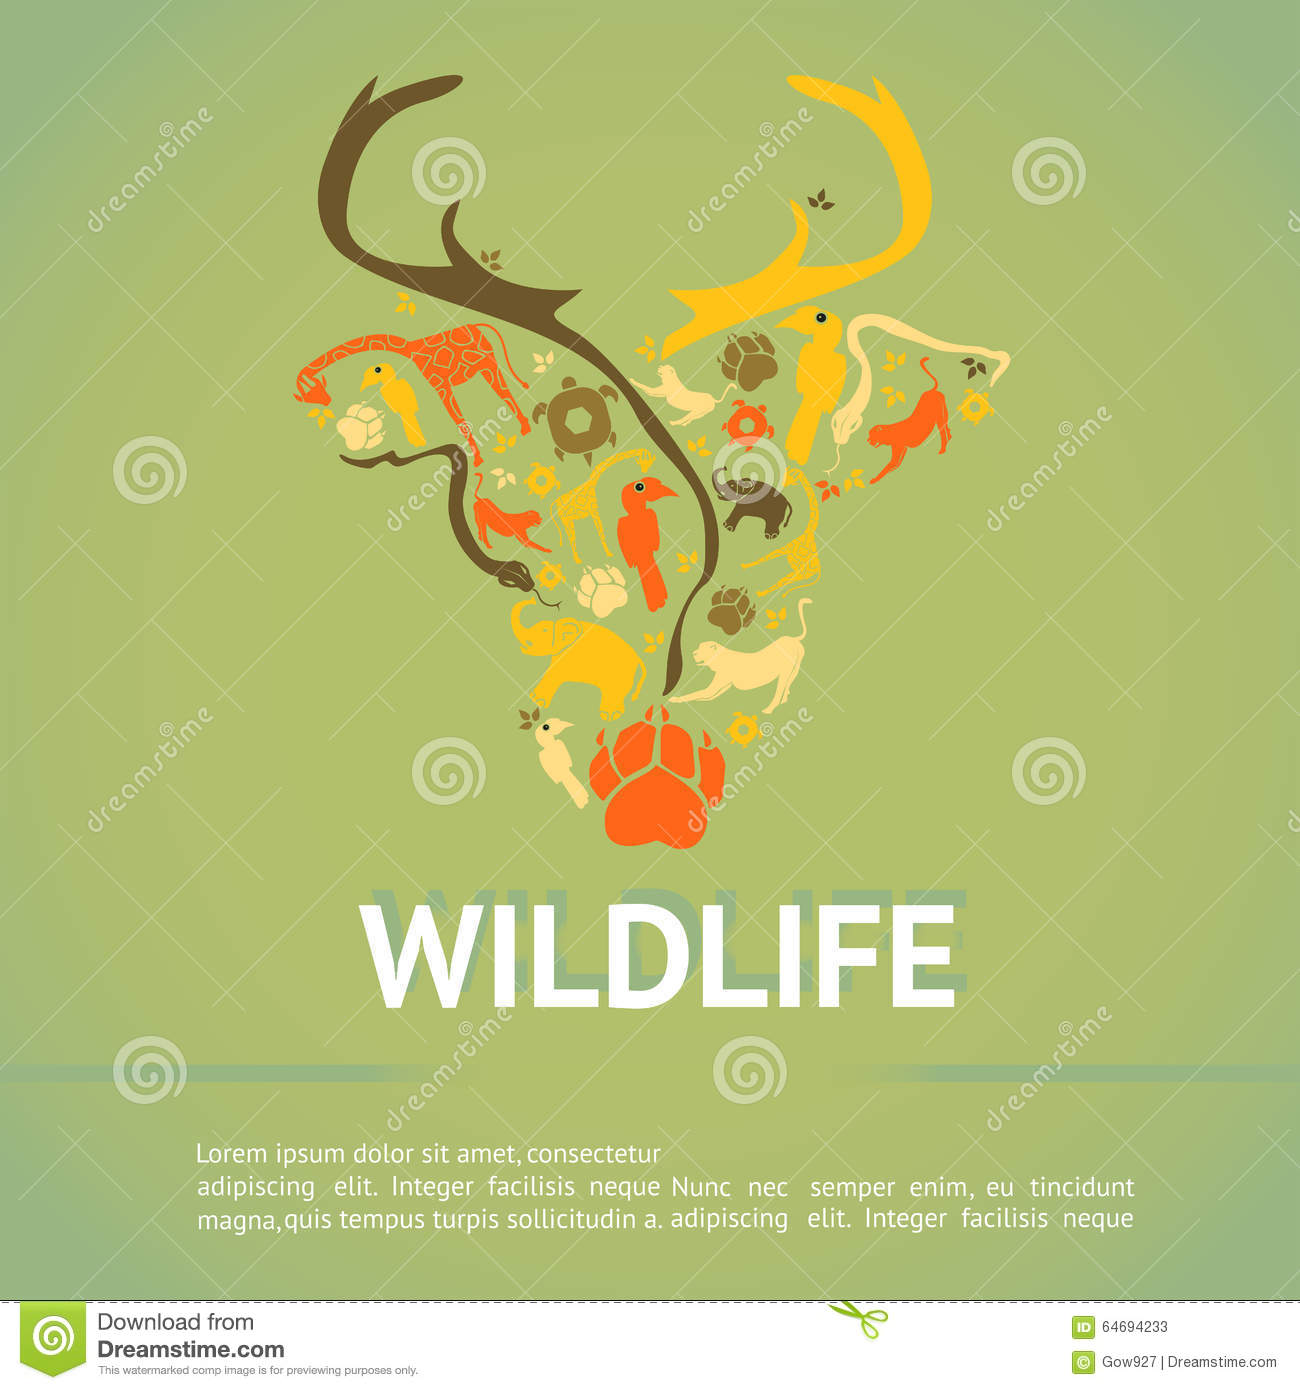 wildlife management plan template - wildlife animal infographic template layout badge